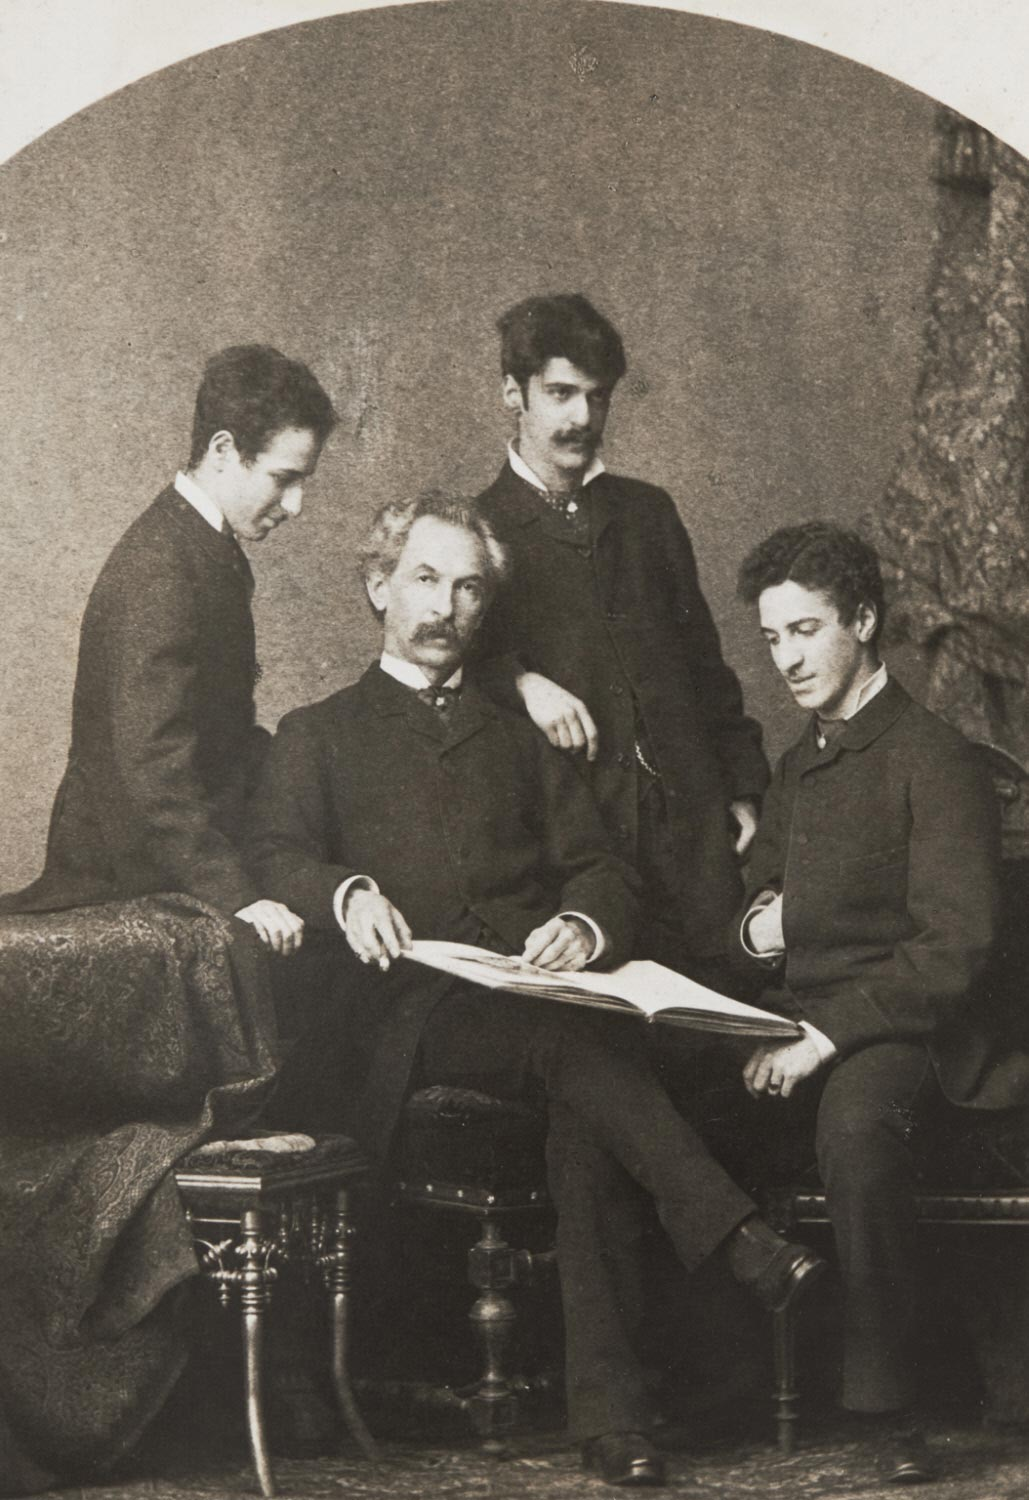 Edward Stieglitz and His Sons, Leopold, Alfred, Julius - Germany